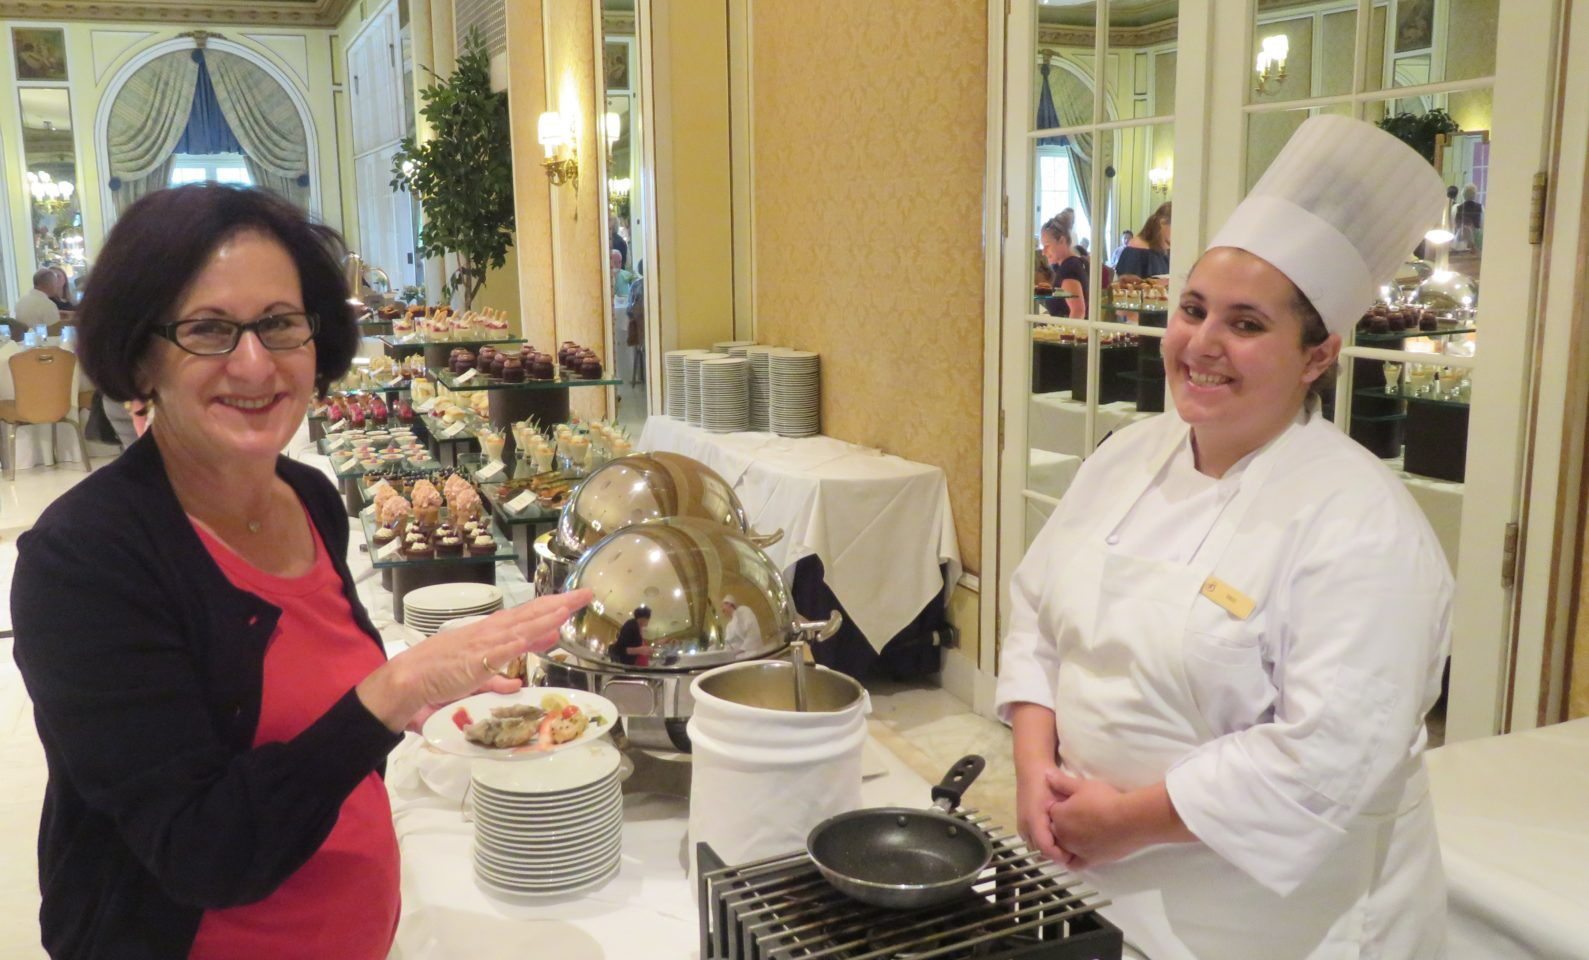 Friendly and smiling staff everywhere you turn at The Broadmoor Resort & Spa